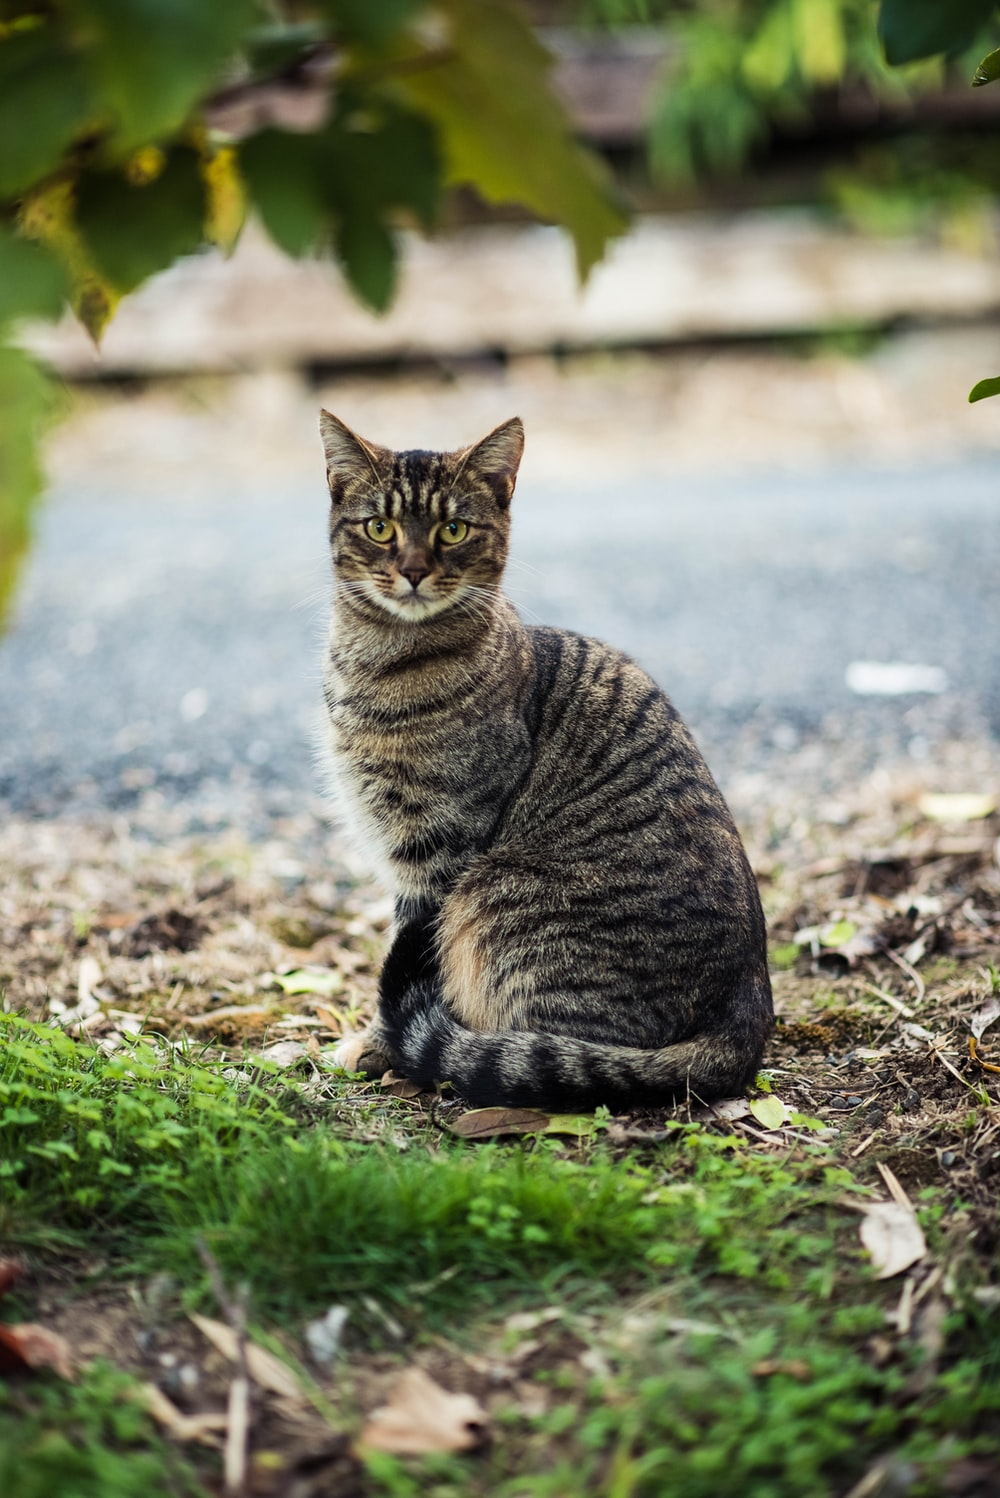 black and gray tabby cat sitting on the ground